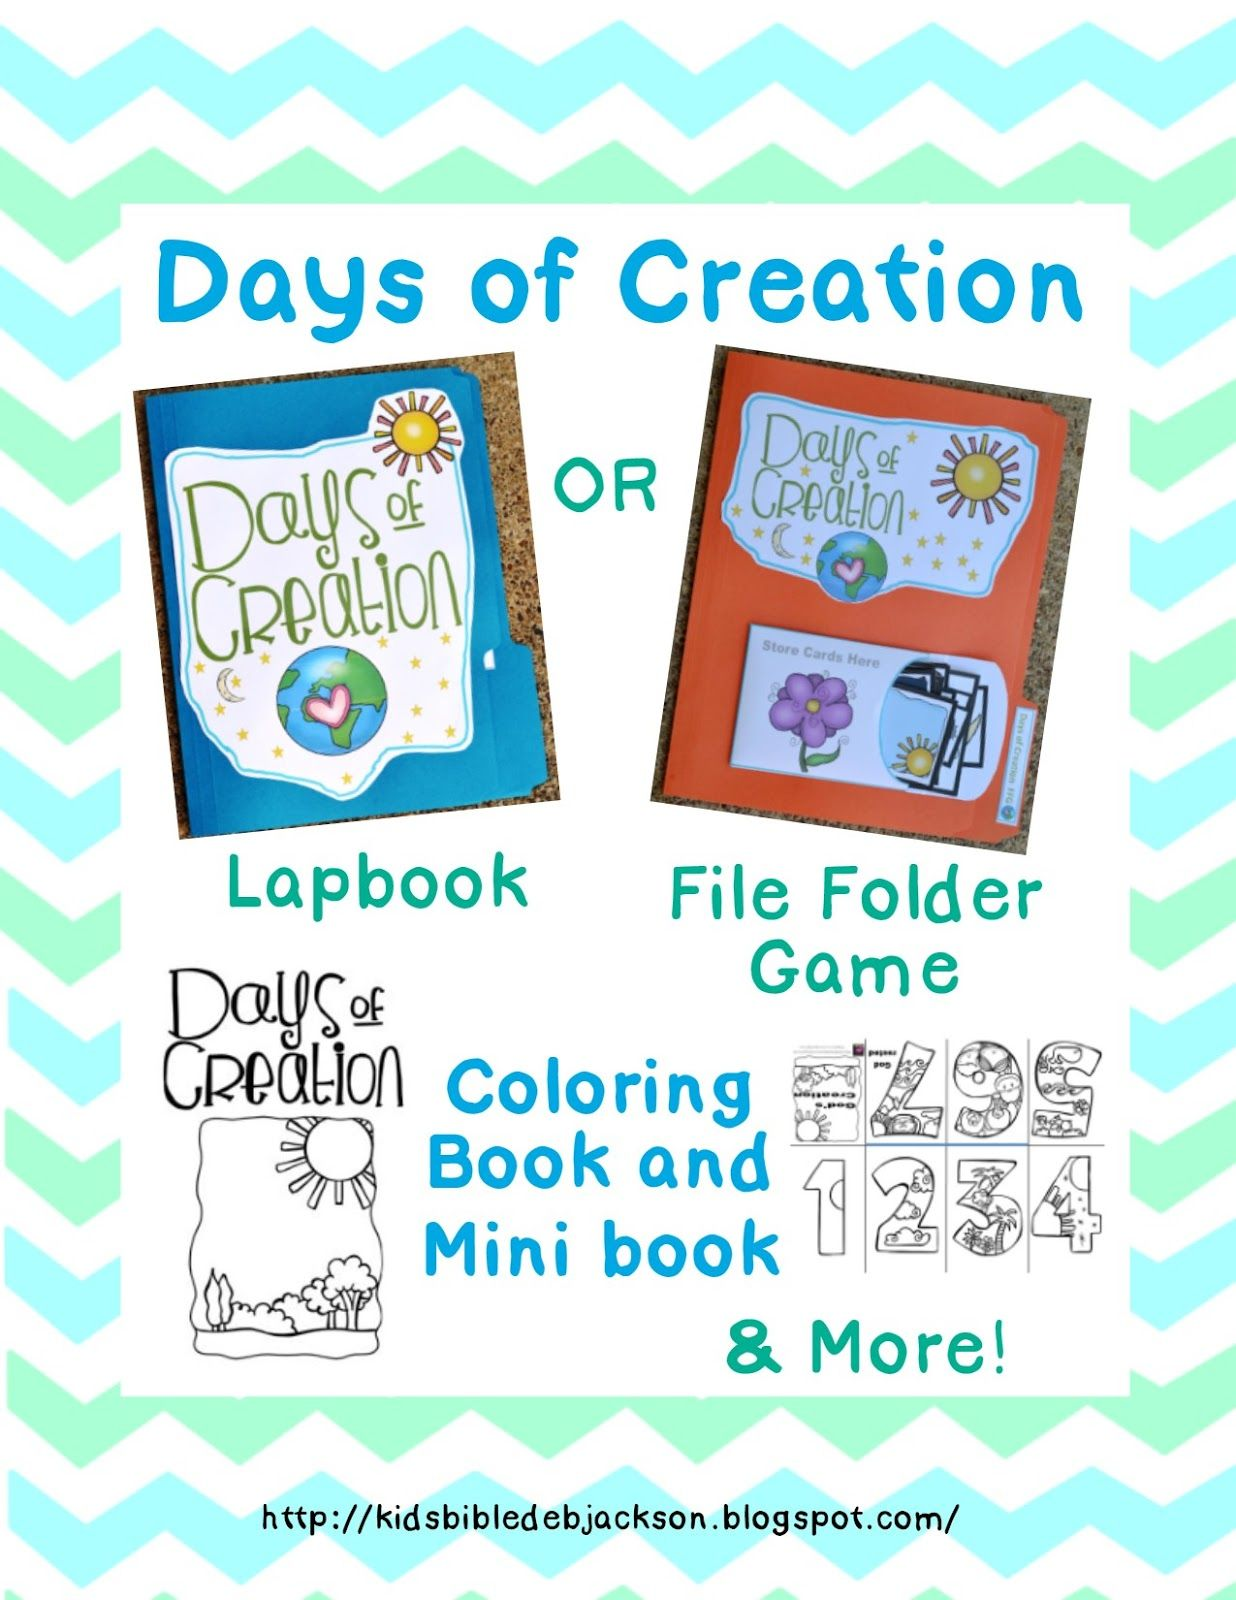 Great Printables To Learn About Days Of Creation